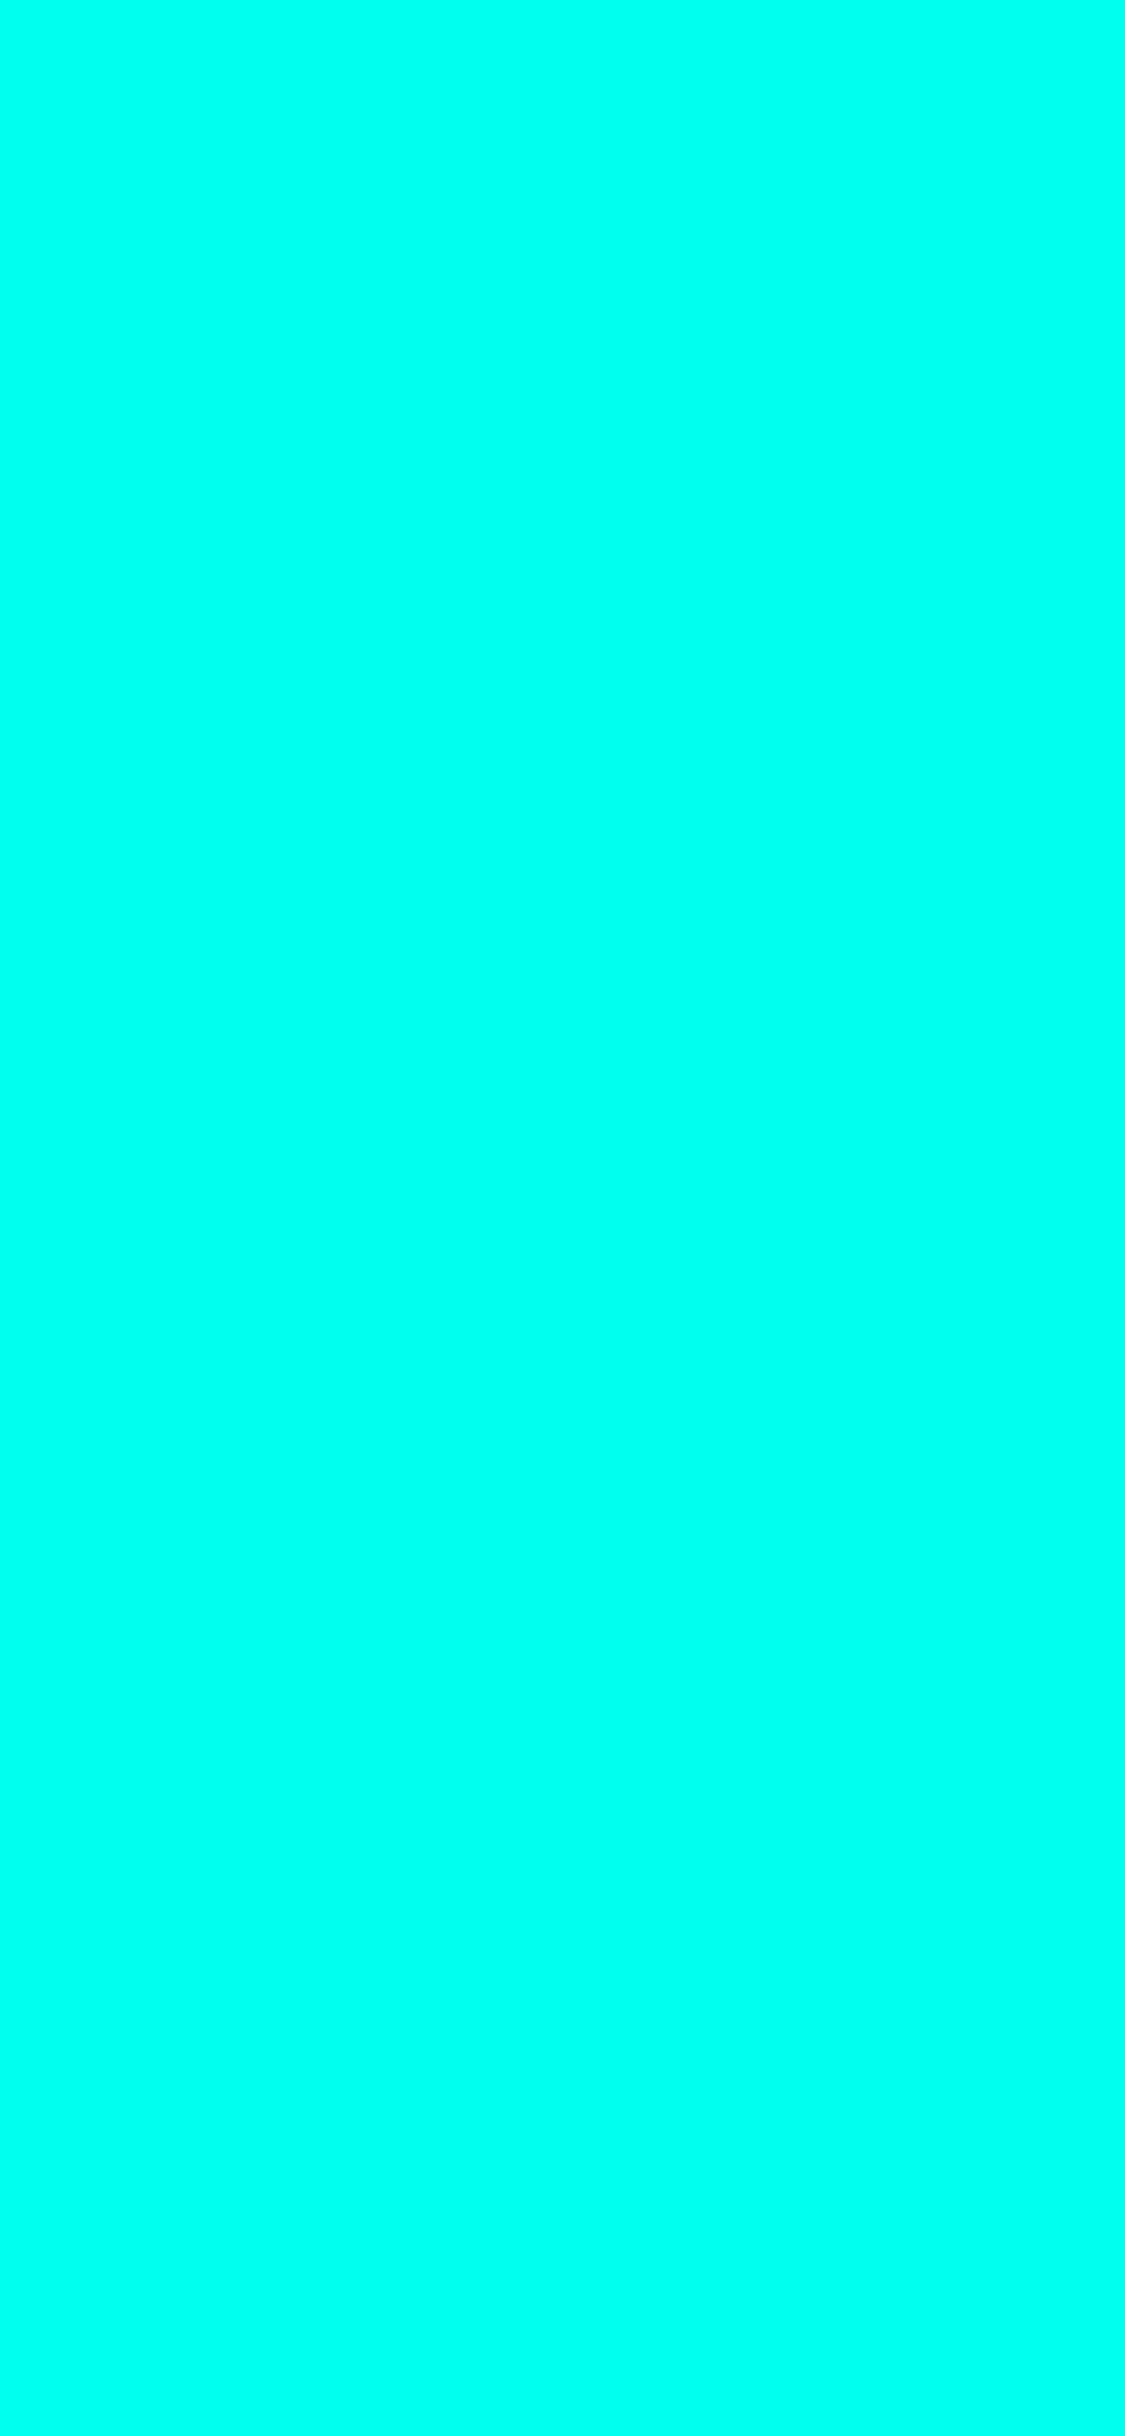 1125x2436 Turquoise Blue Solid Color Background